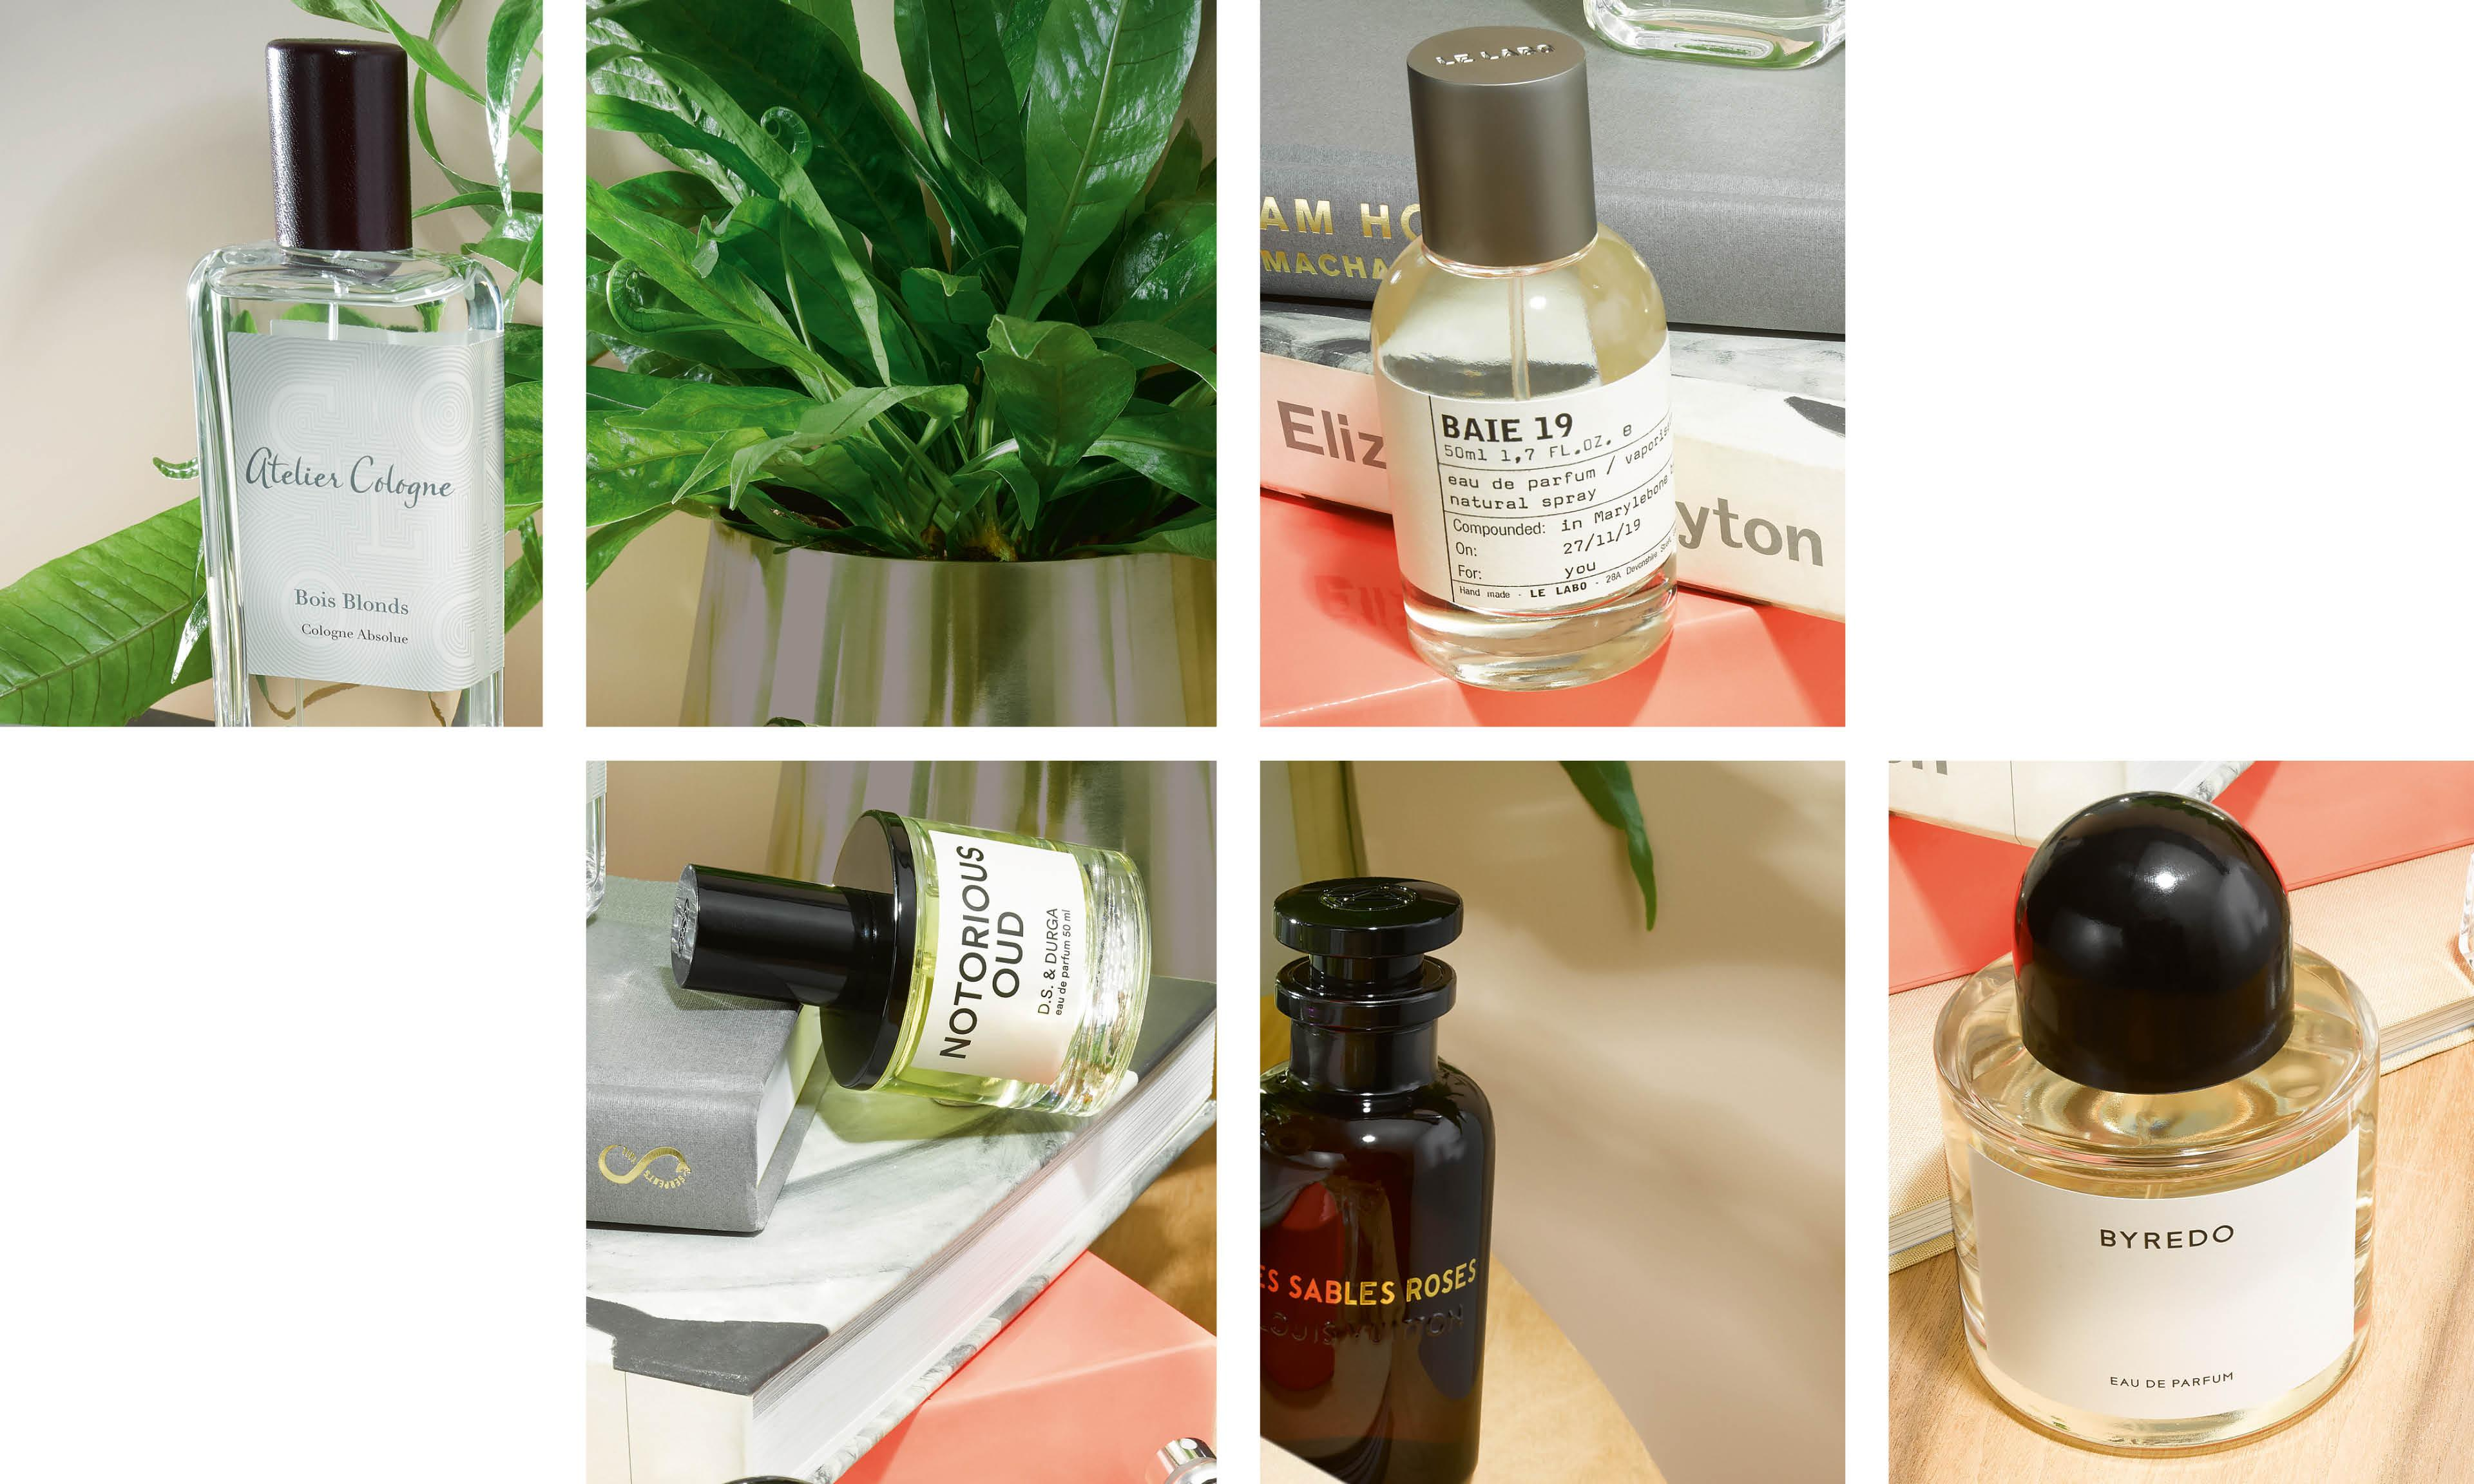 Smell like you: why gender-free is the future of fragrance